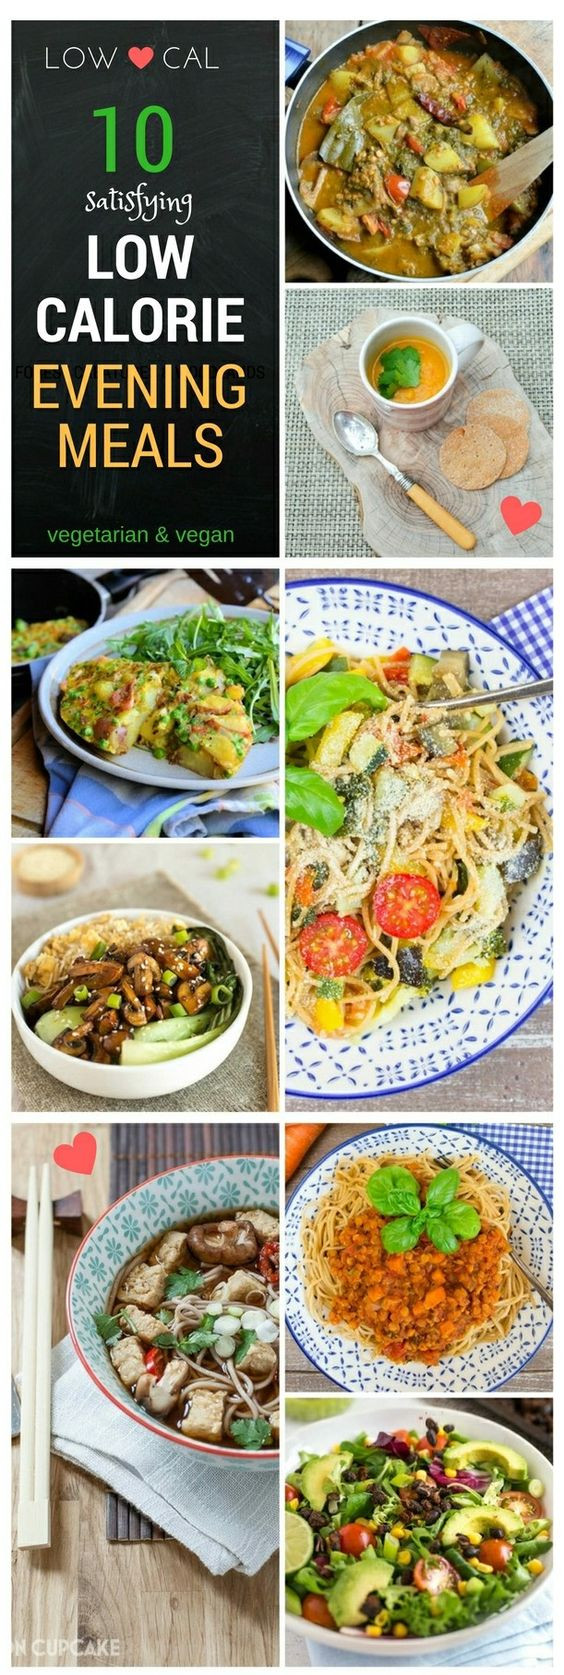 Vegetarian Low Calorie Recipes  Low calorie meals Meals and Ve arian meal on Pinterest